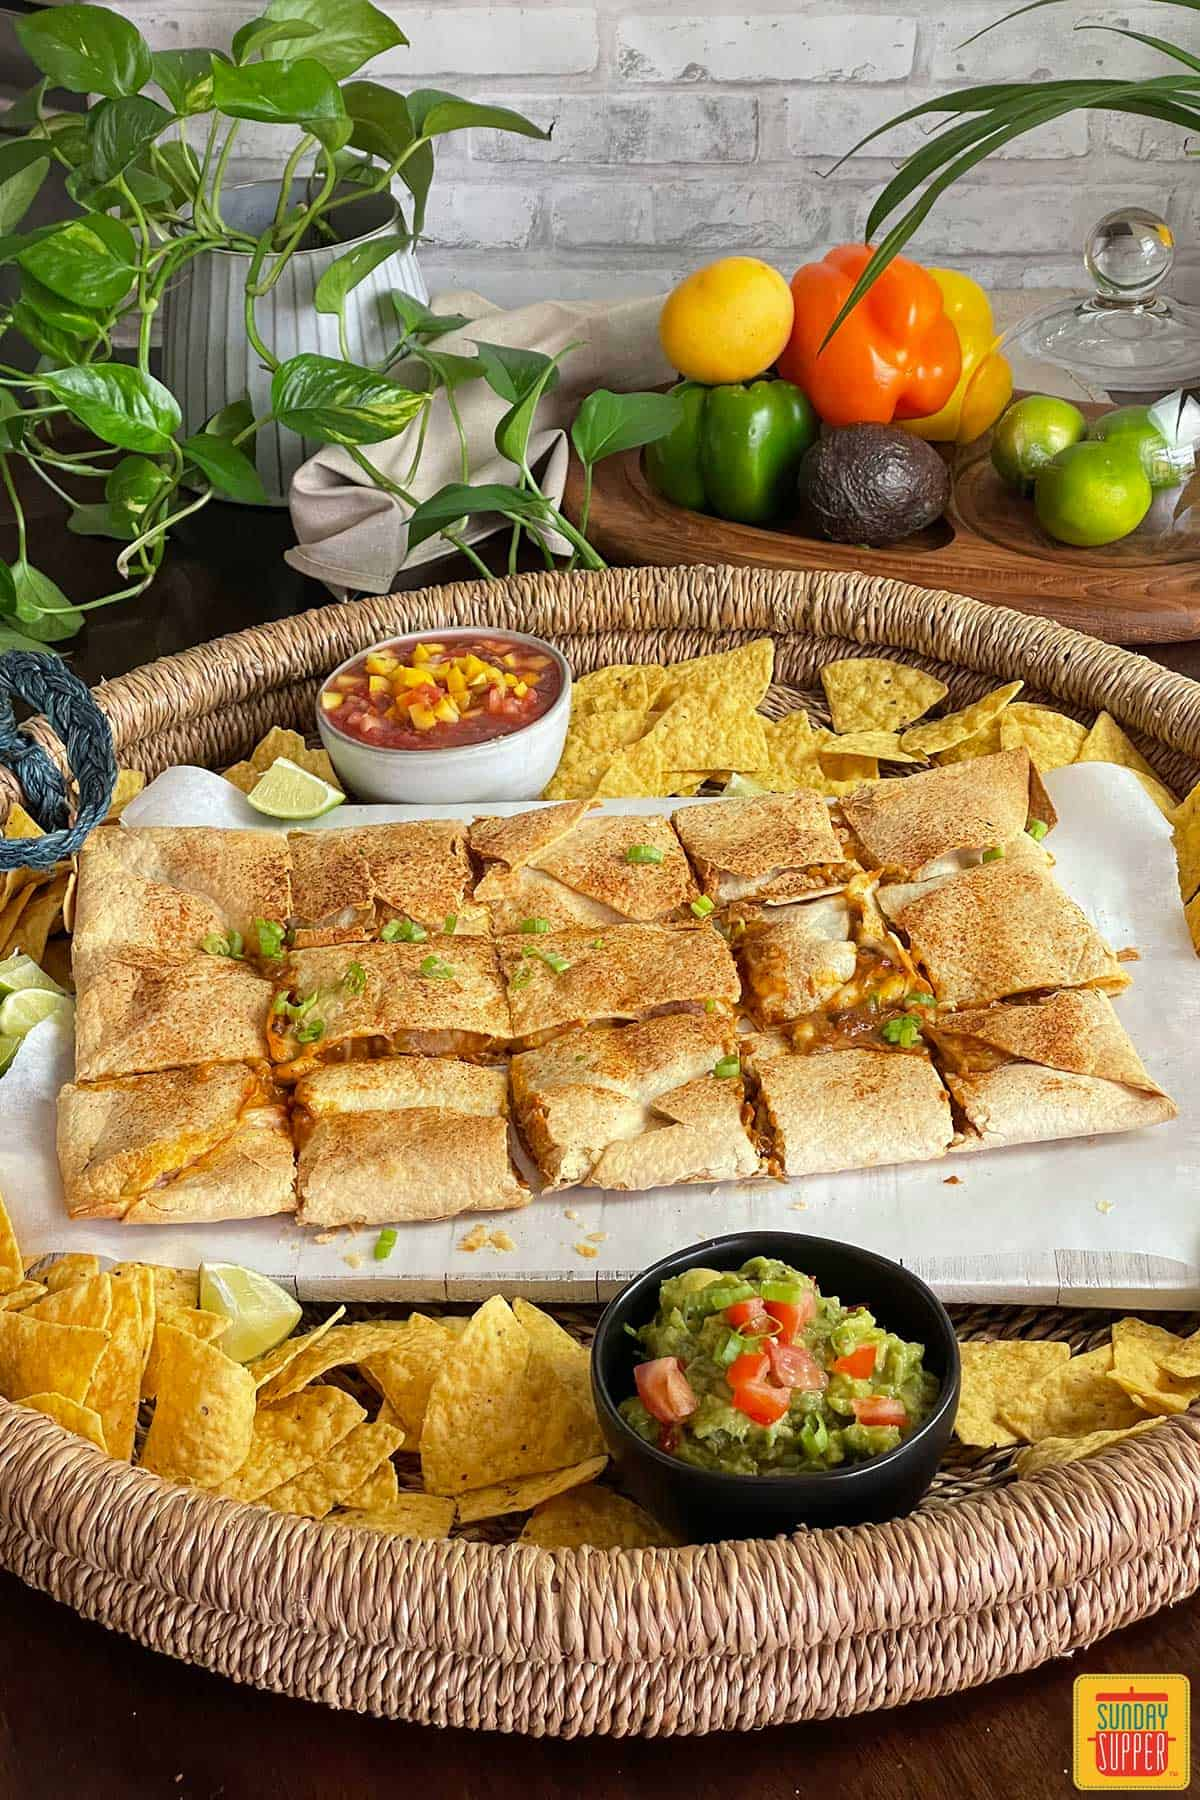 Baked quesadillas on a platter with guacamole, chips, and salsa